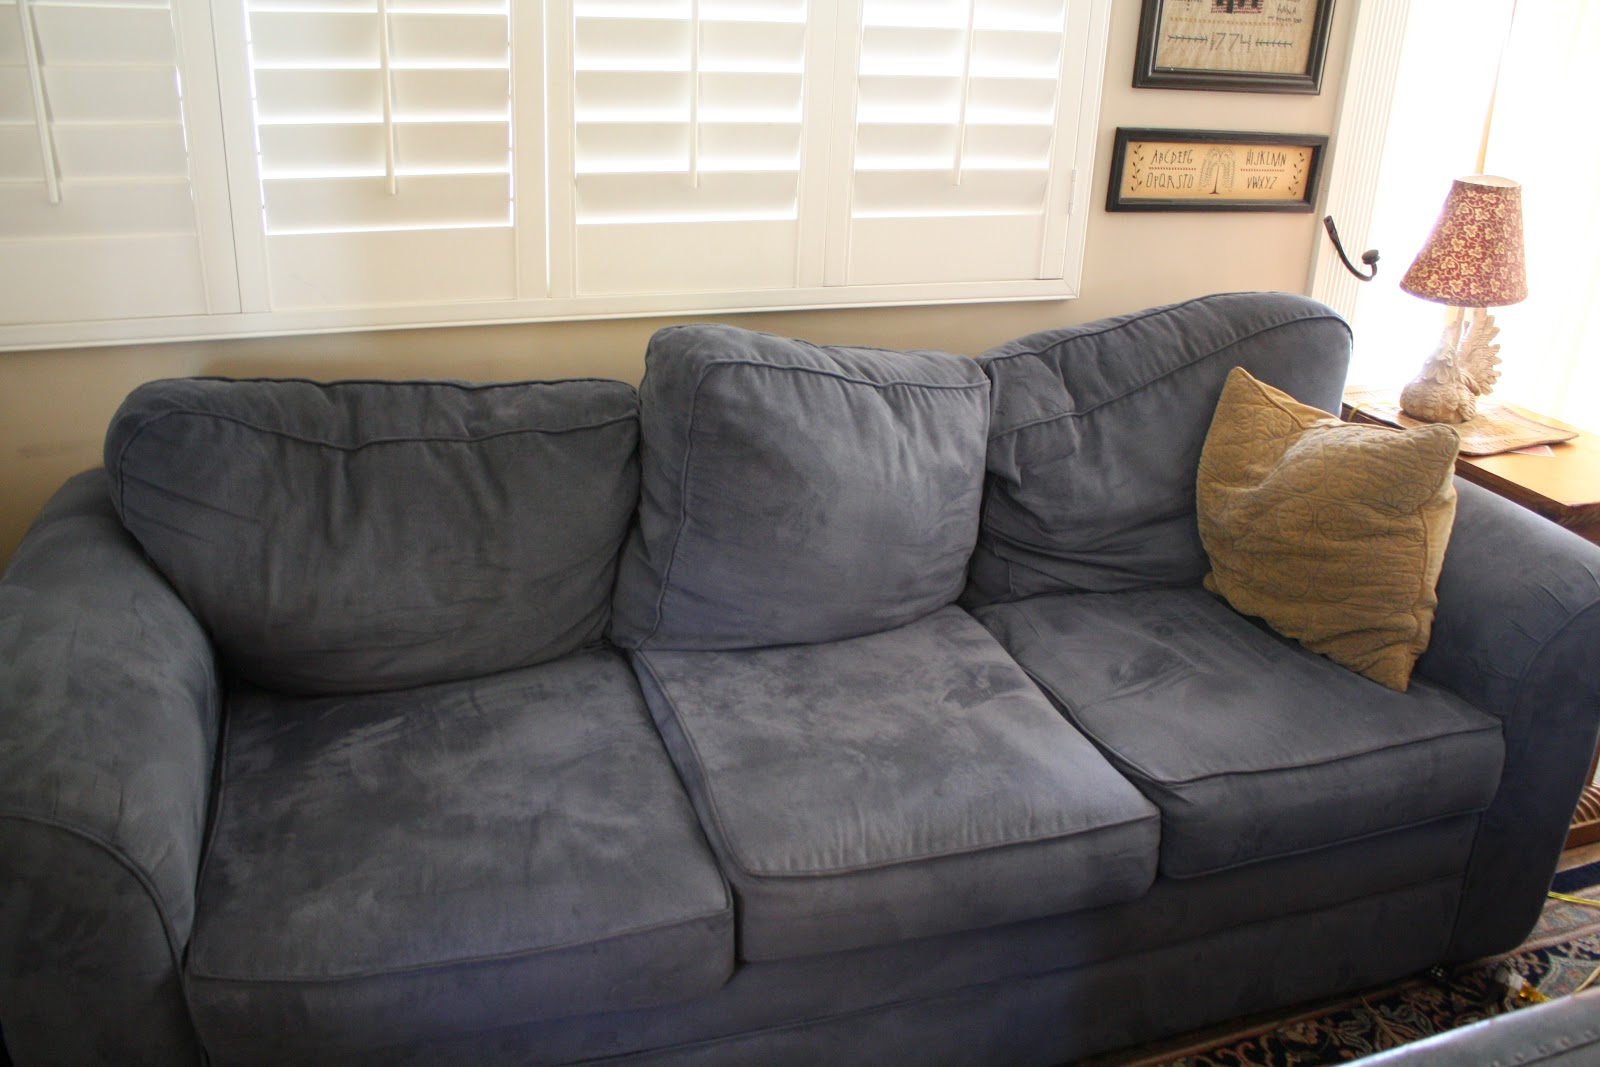 Wonderful How To Refill Couch Cushions Cheaply